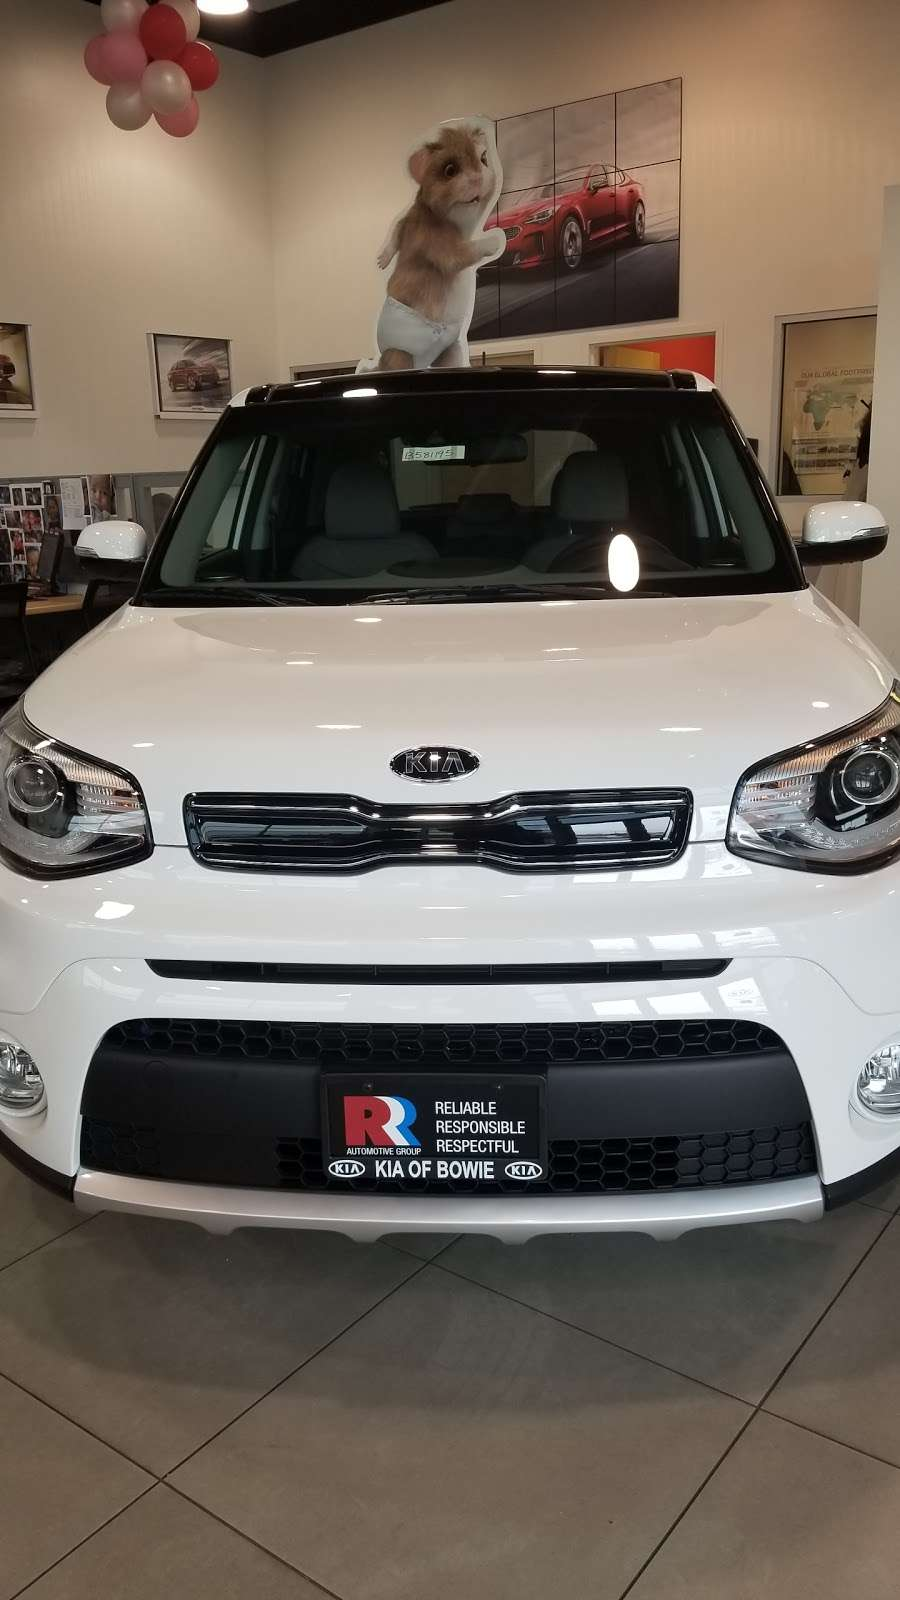 Kia of Bowie - car repair  | Photo 10 of 10 | Address: 16620 Governor Bridge Rd, Bowie, MD 20716, USA | Phone: (301) 820-7500